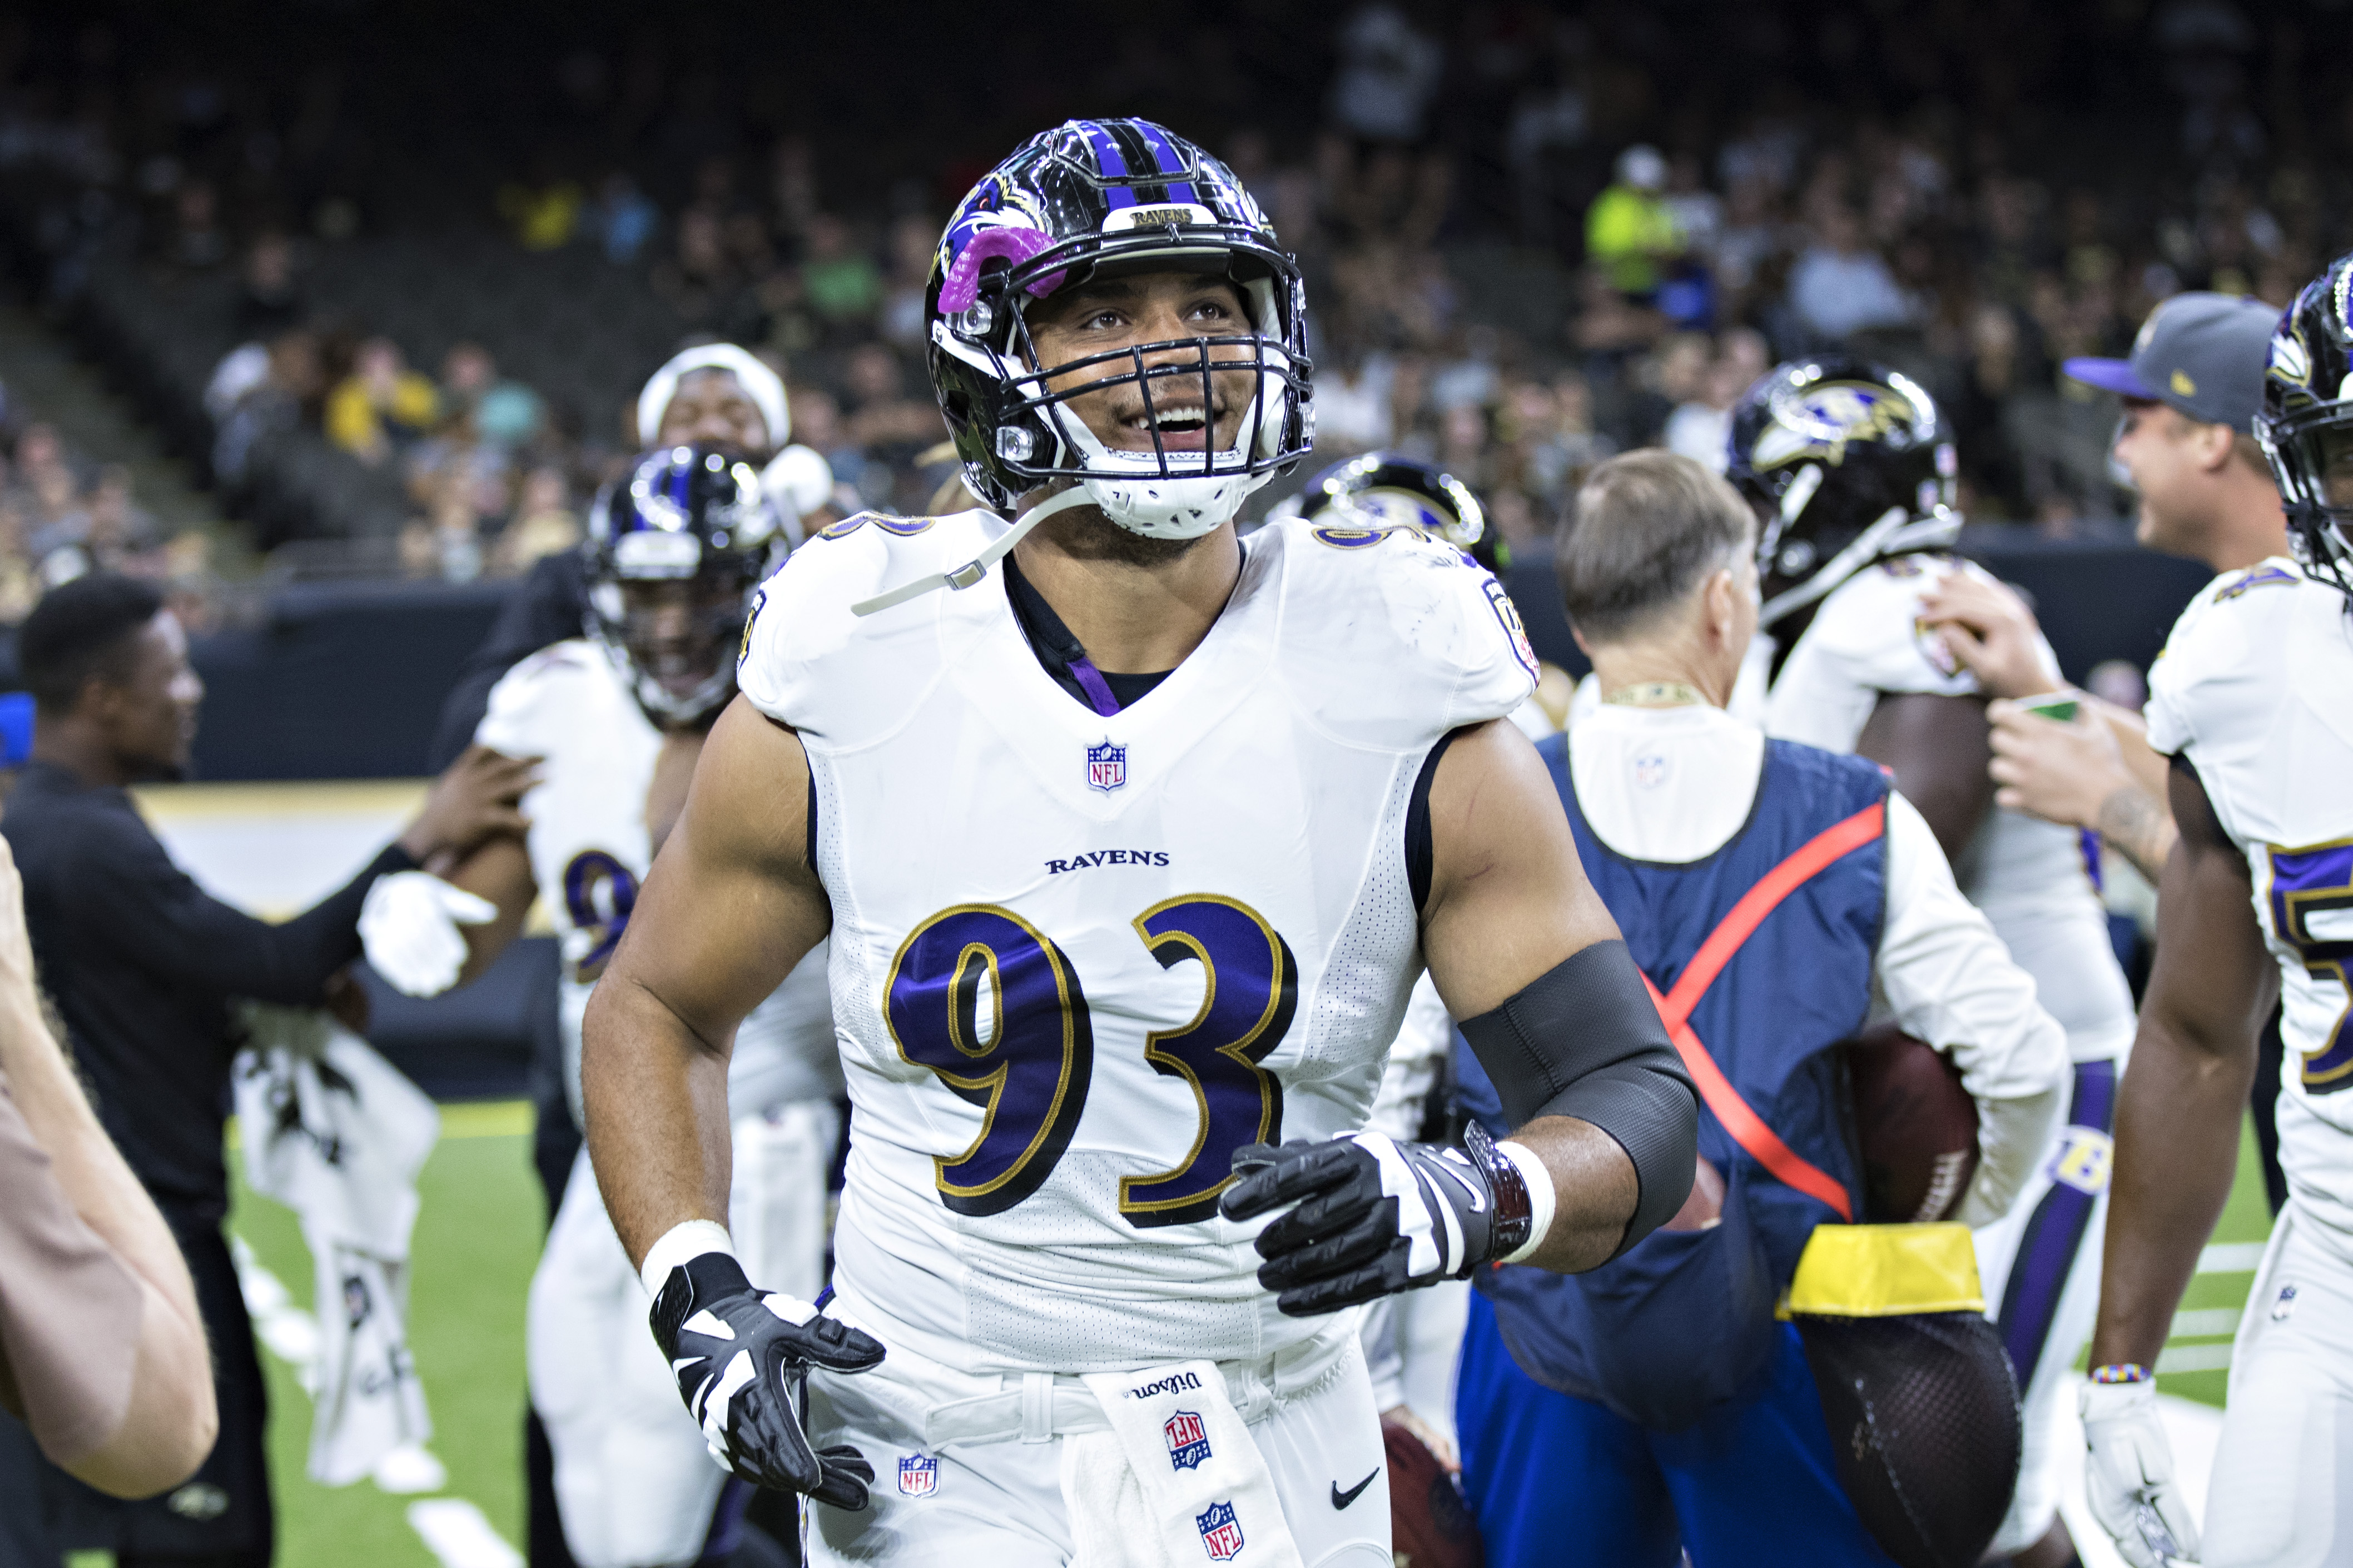 Reacting to the Ravens trading Chris Wormley to the Steelers